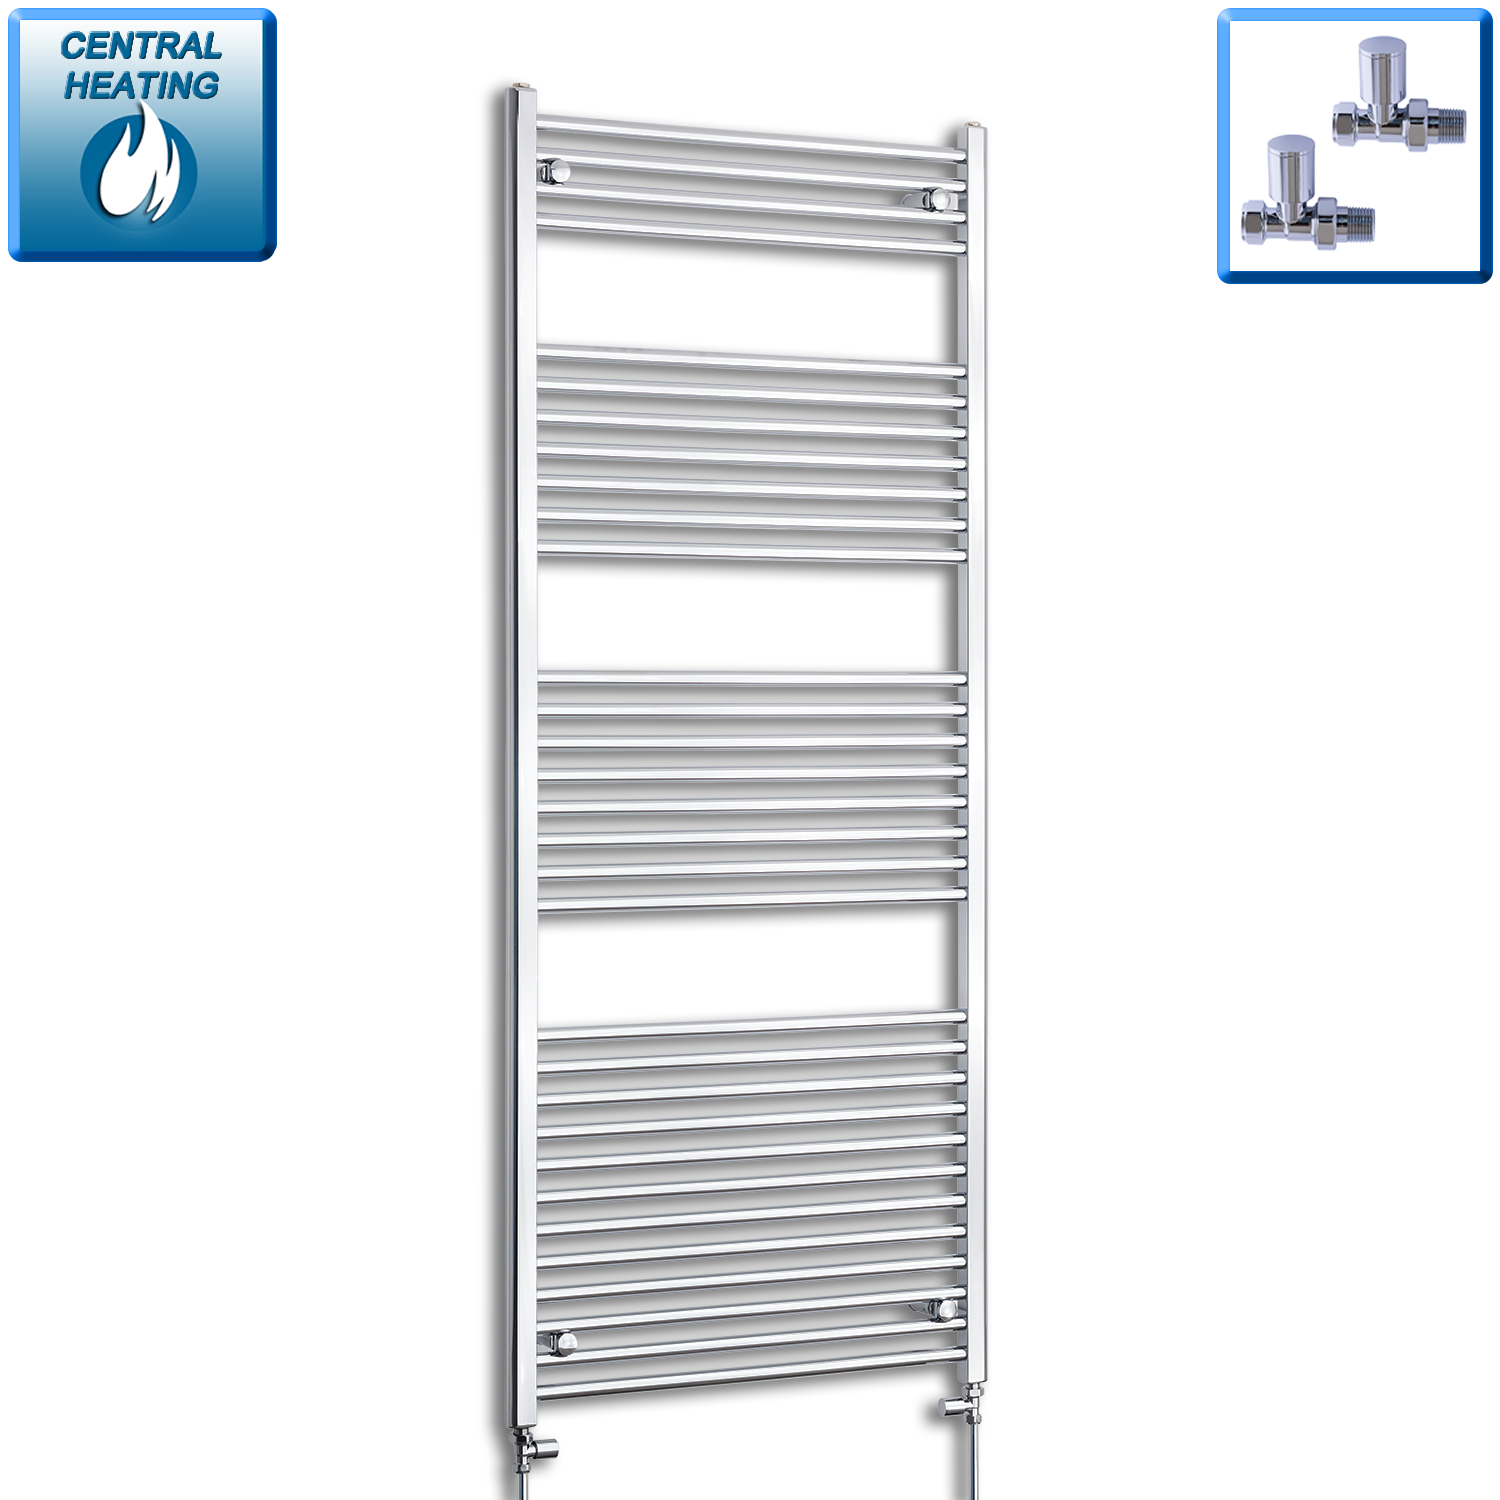 750mm Wide 1800mm High Curved Chrome Heated Towel Rail Radiator HTR,With Straight Valve